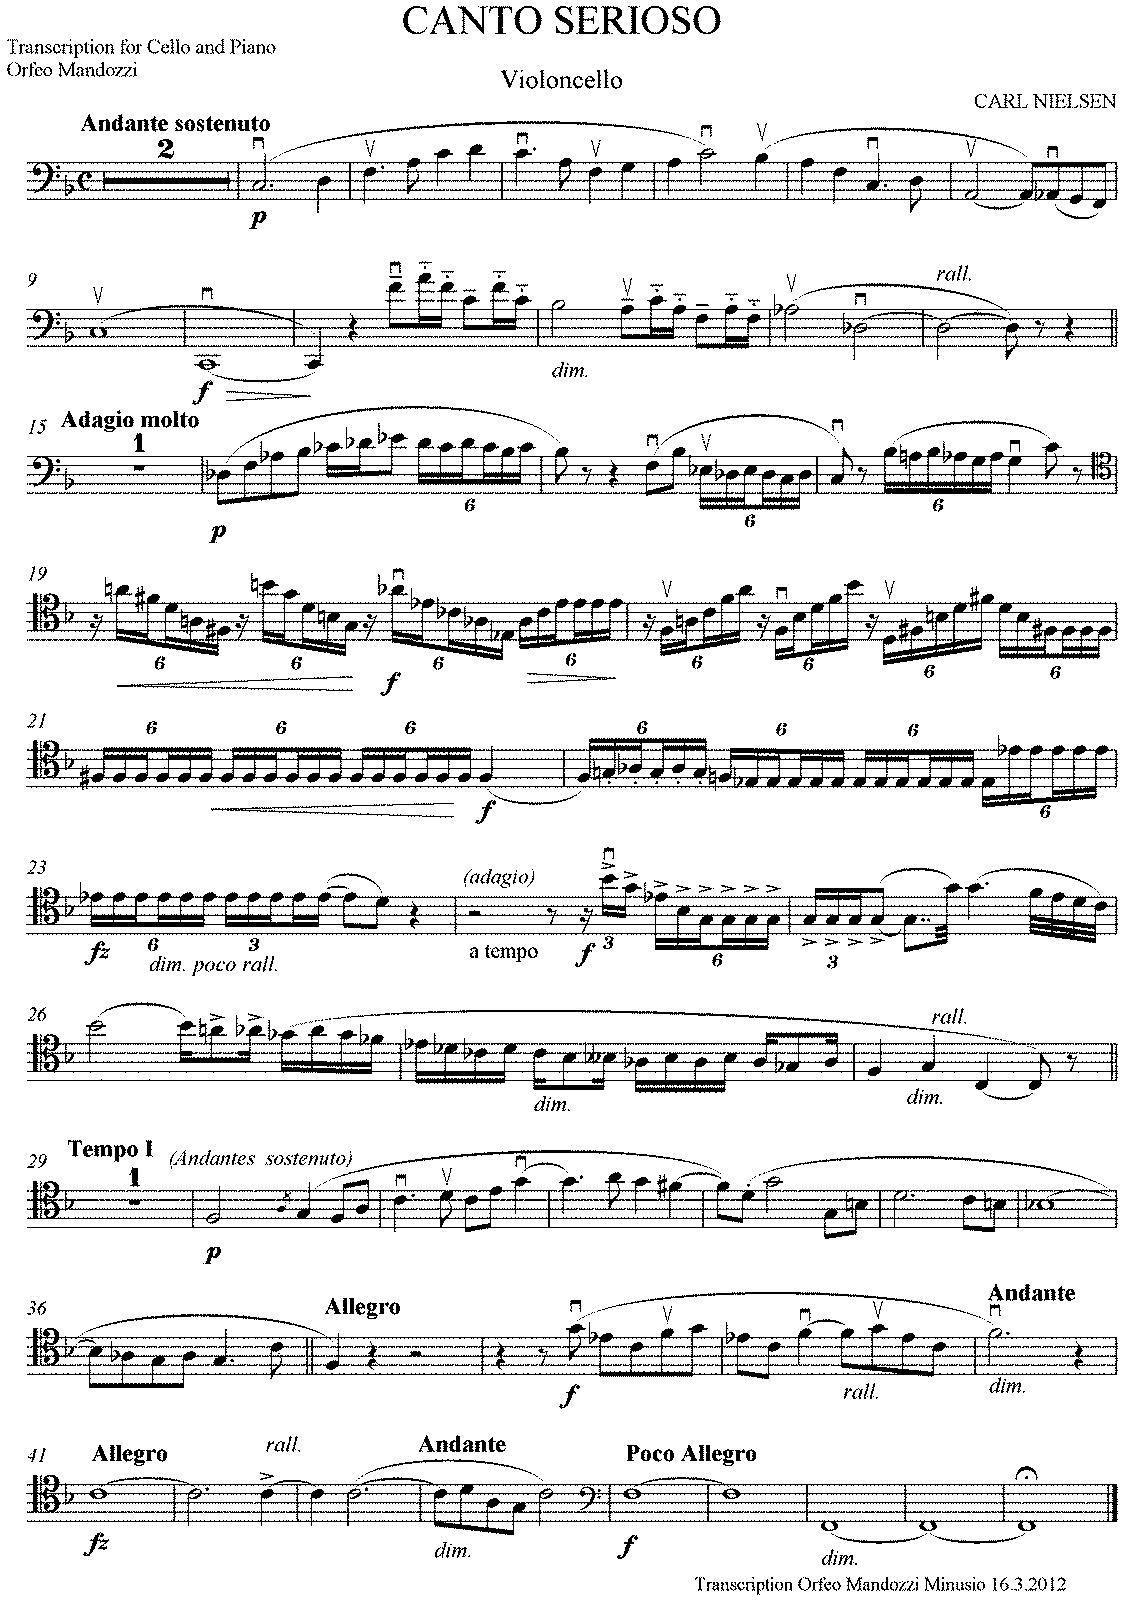 PMLP05036-Nielsen Canto Serioso Cello Part.pdf